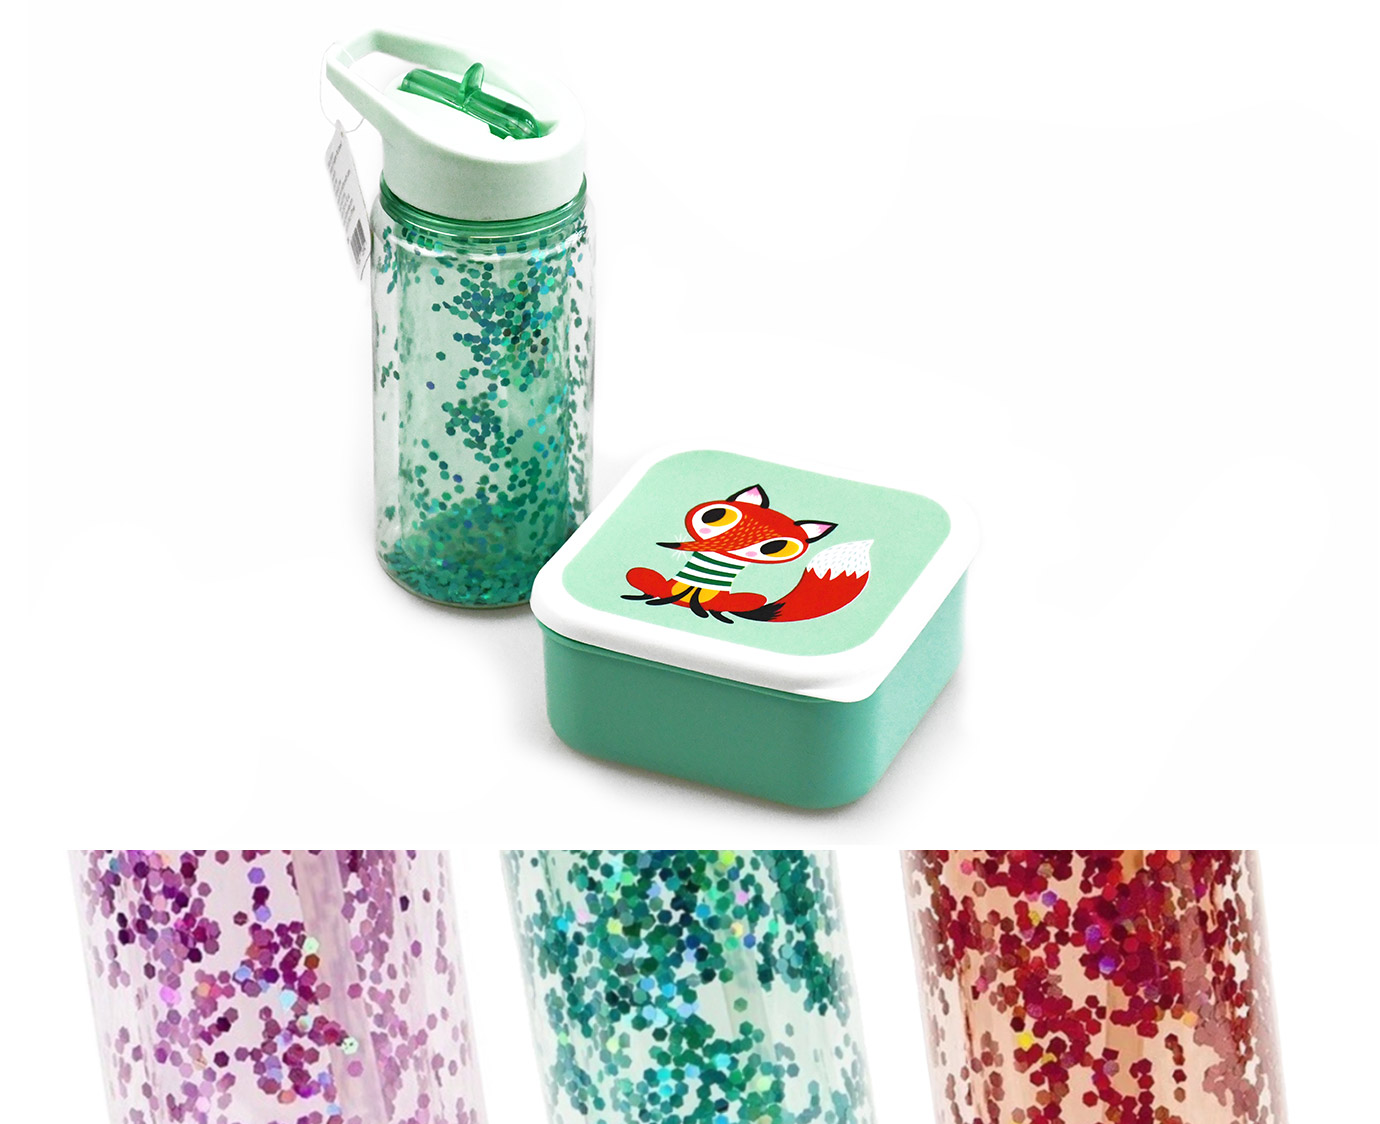 Set 'Glitter animals'